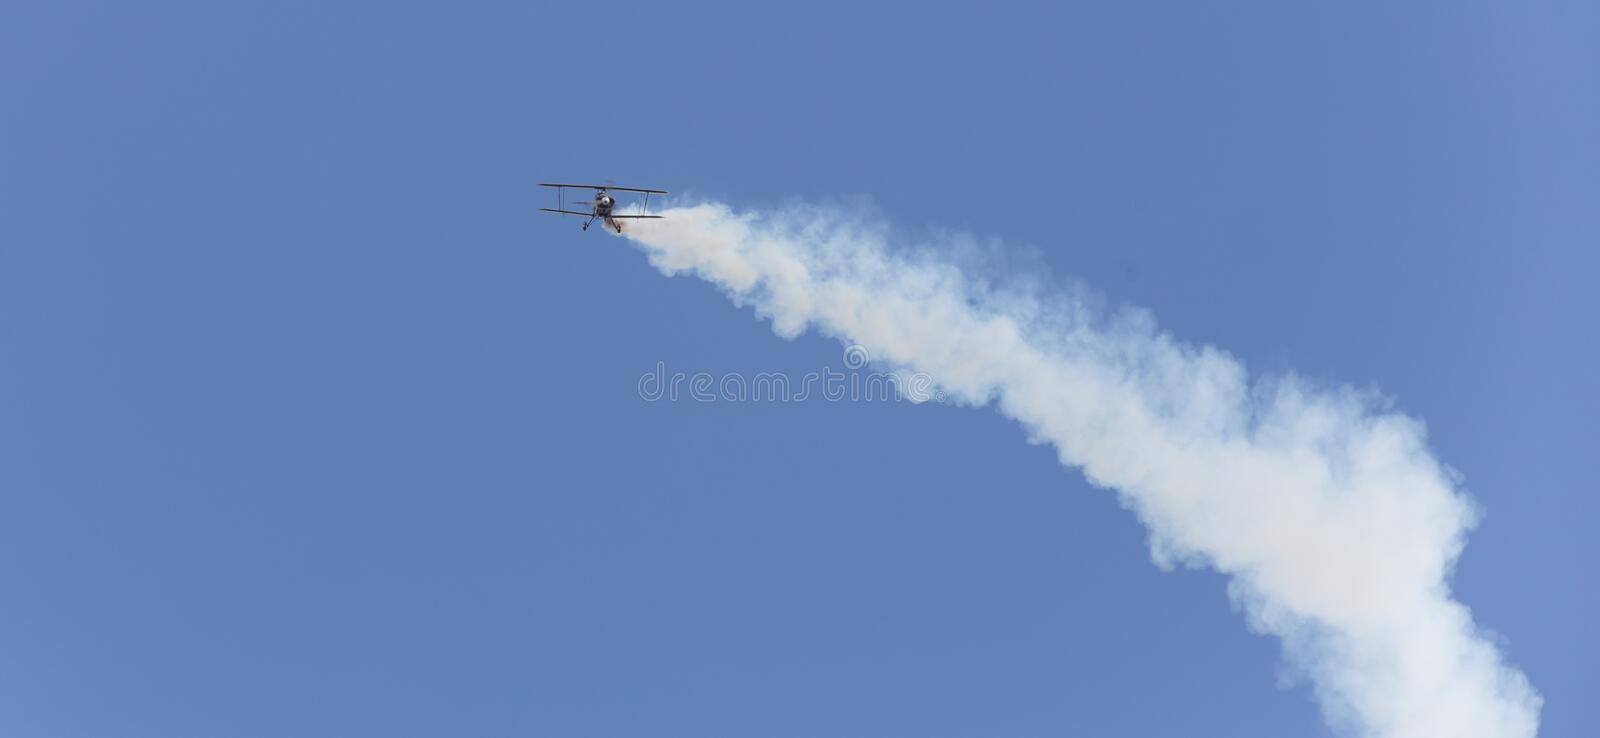 Stunt flyer airplane in the sky. A stunt flyer airplane in the sky royalty free stock photo